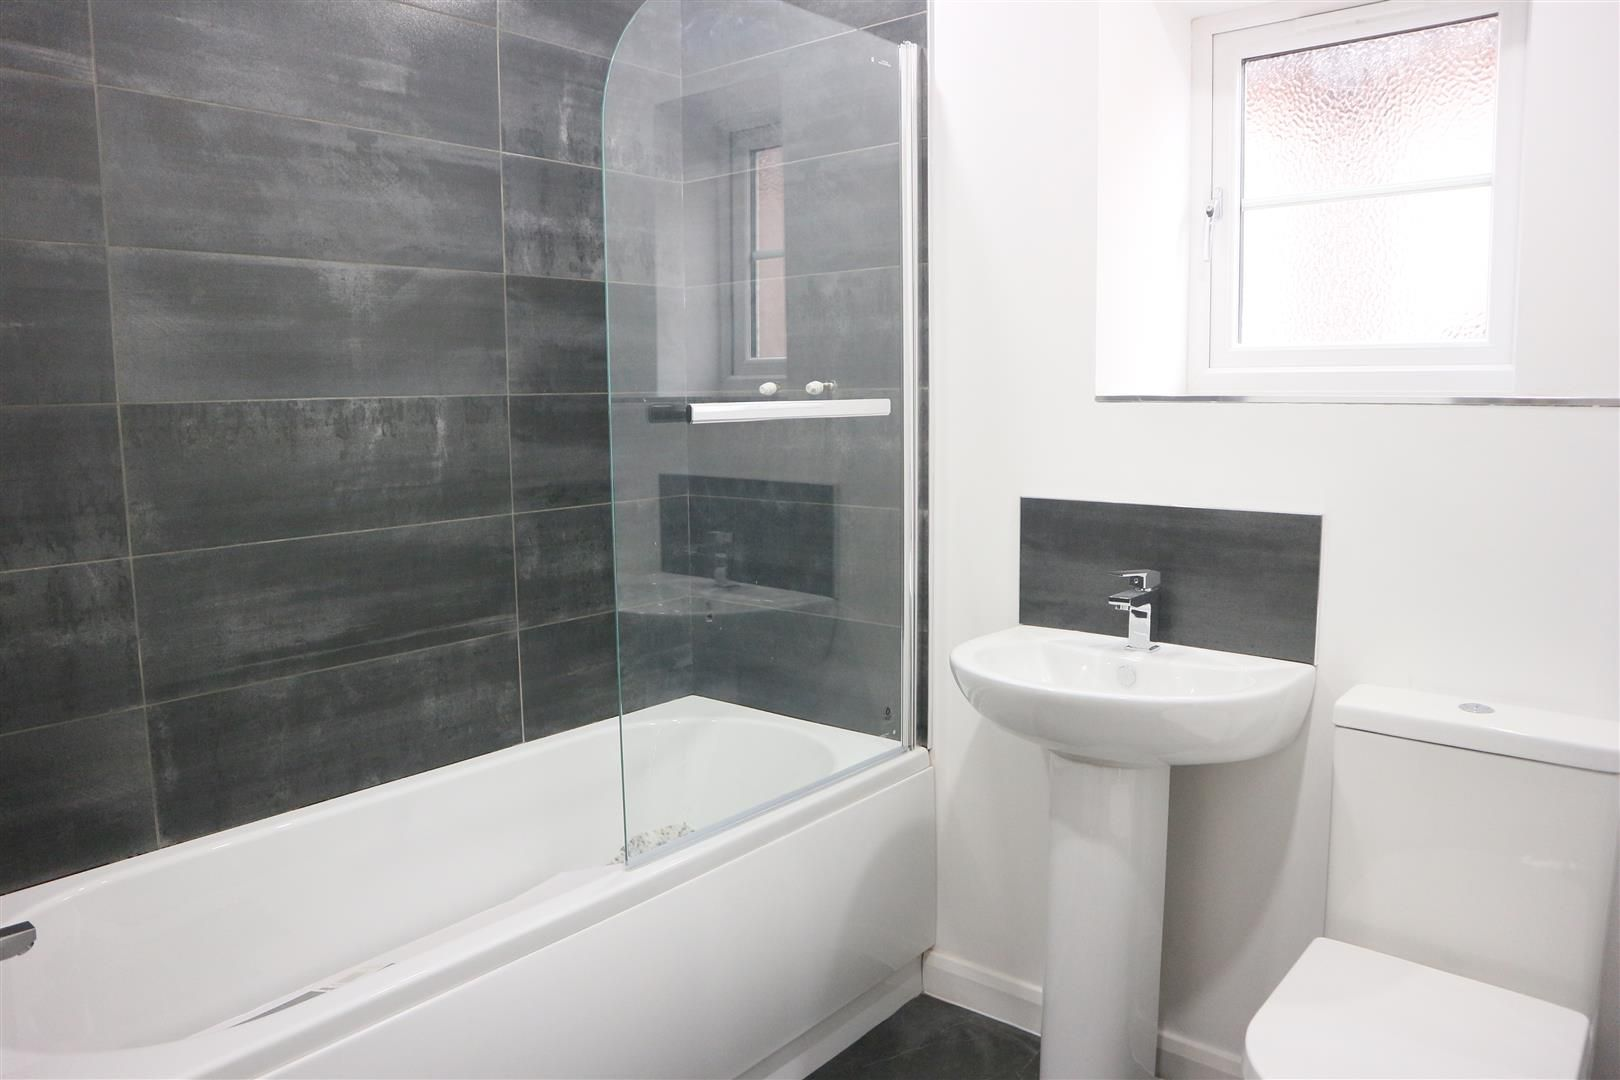 3 bed semi-detached for sale in Netherton 6